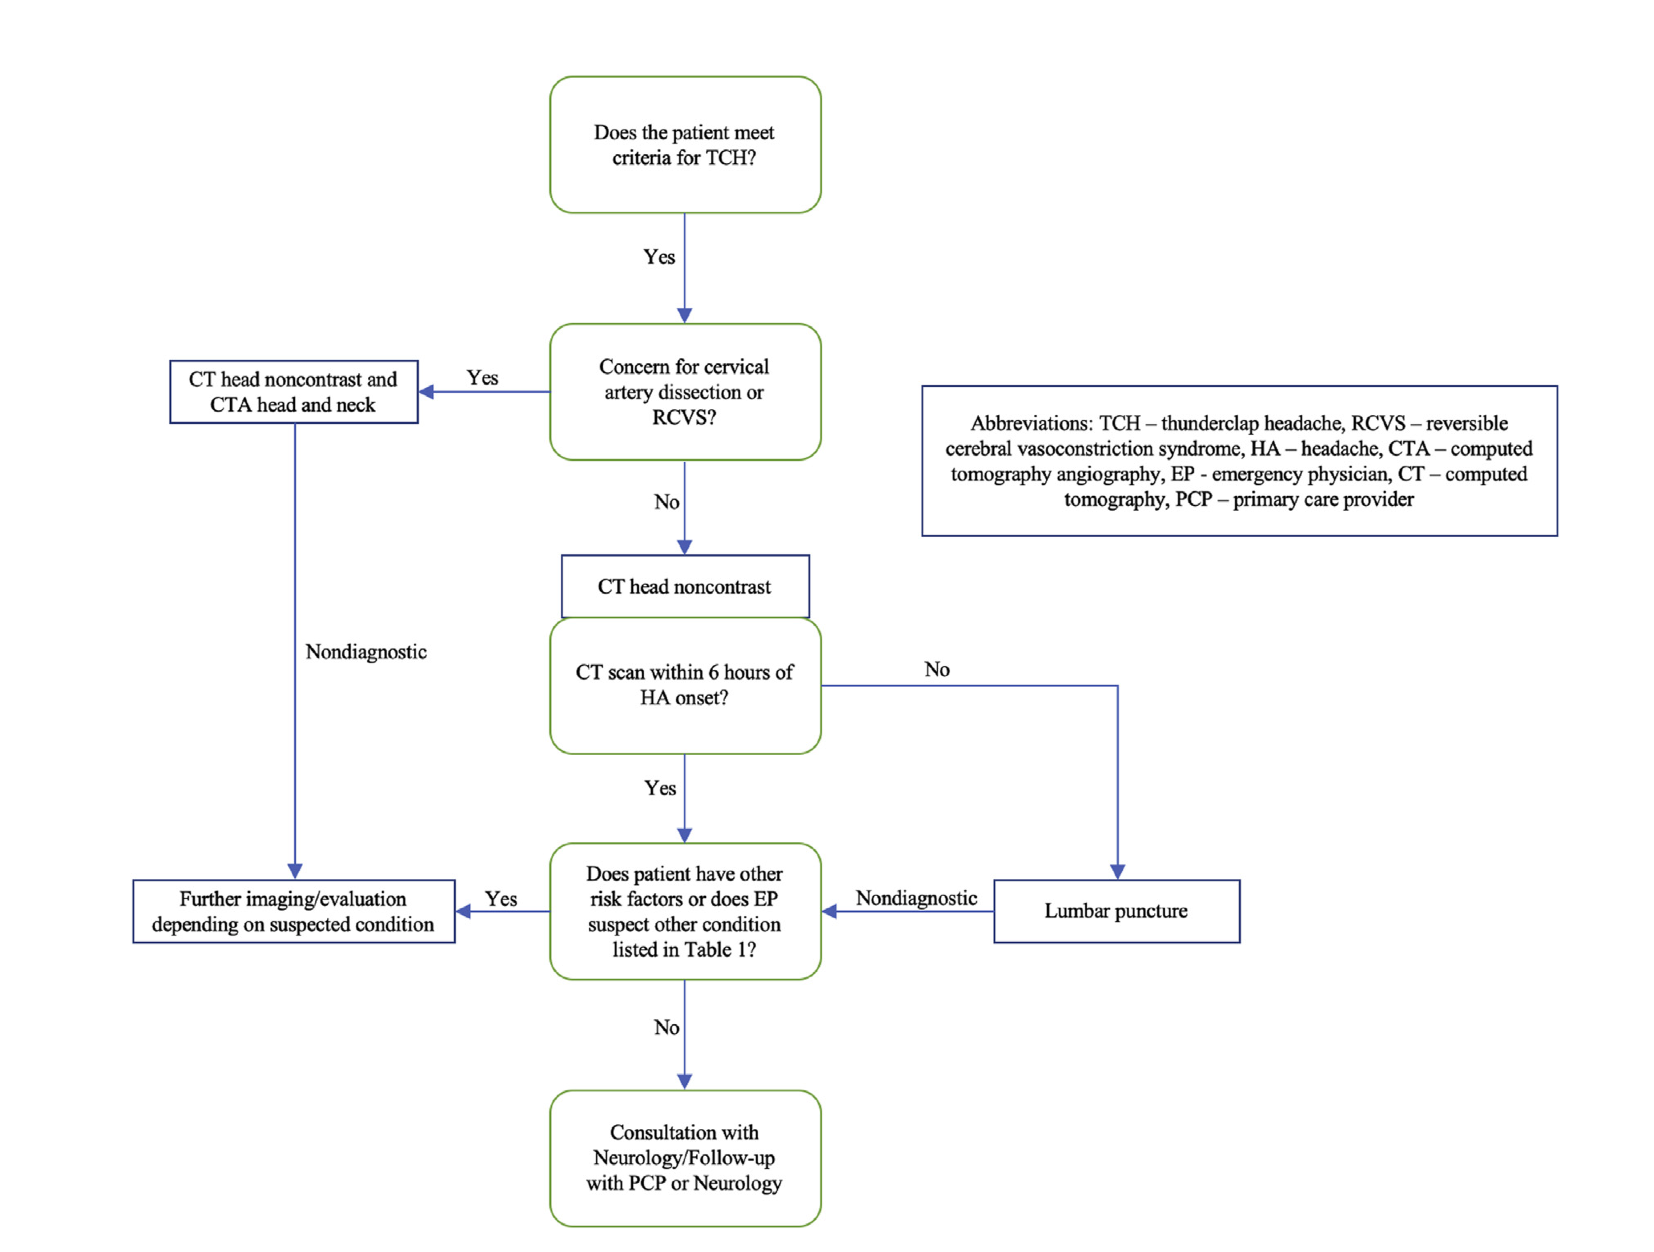 From cited article - Diagnostic evaluation of thunderclap headache